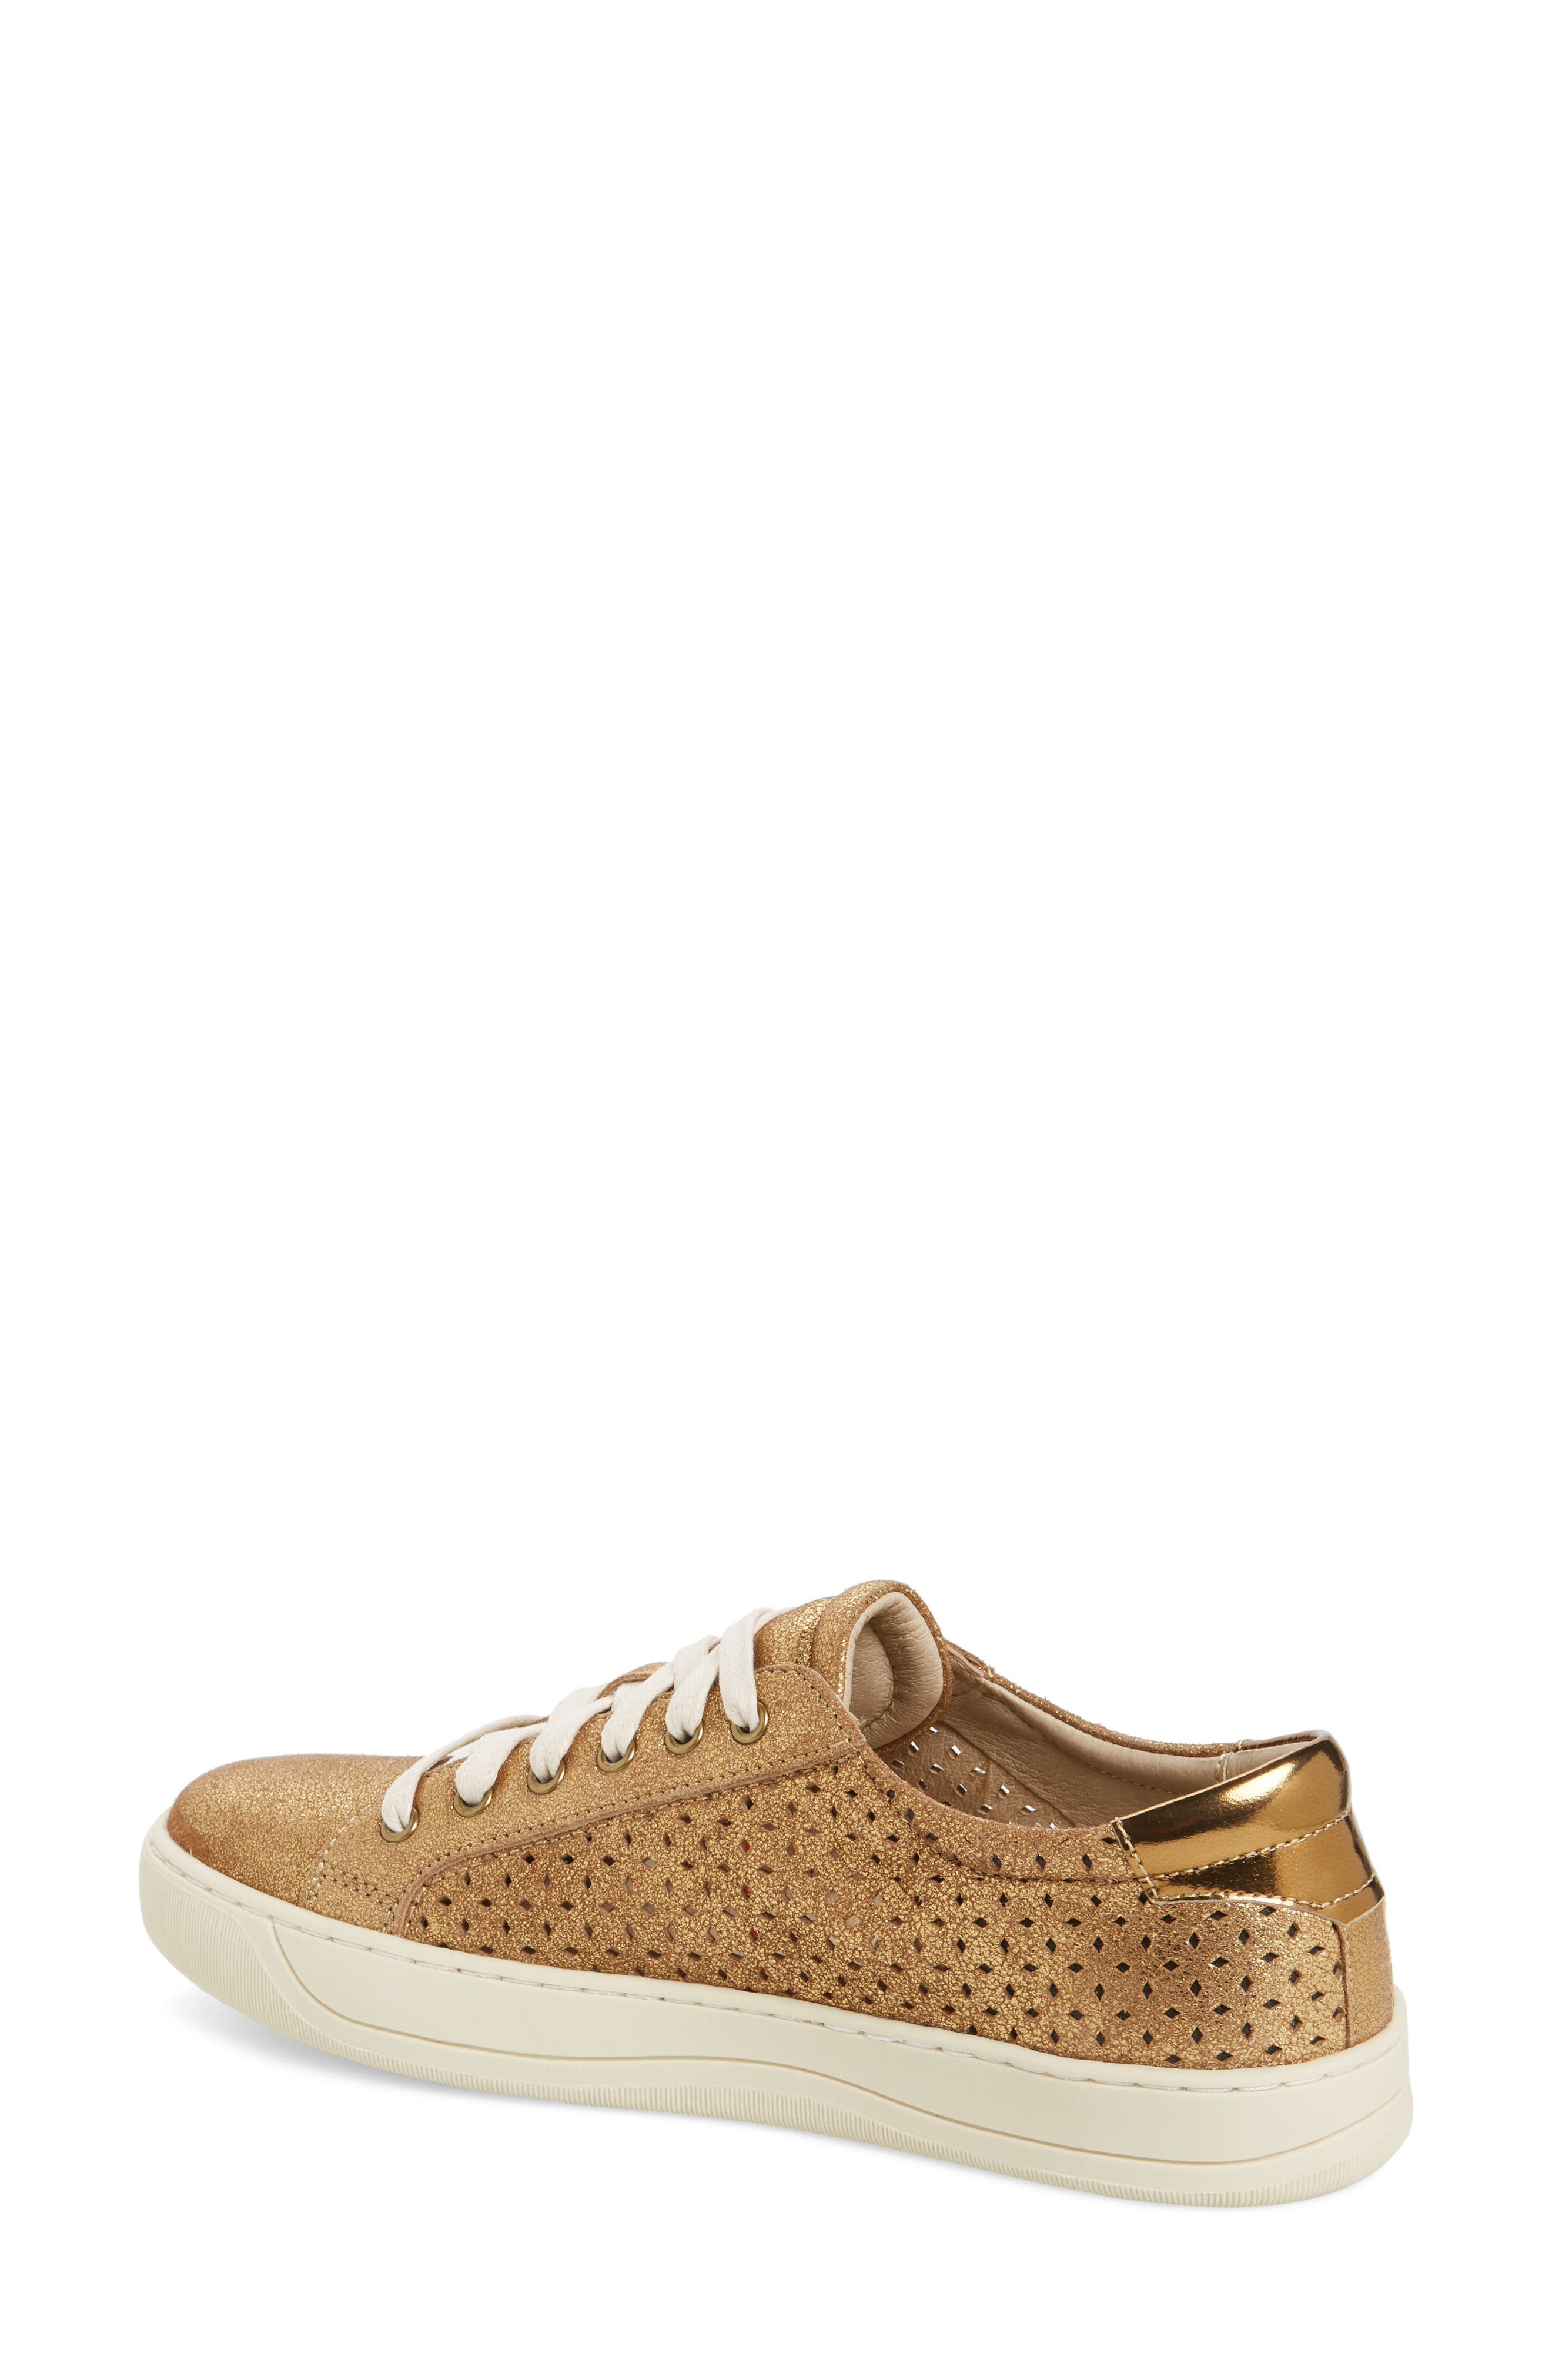 Emerson Perforated Sneaker,                             Alternate thumbnail 2, color,                             GOLD SUEDE